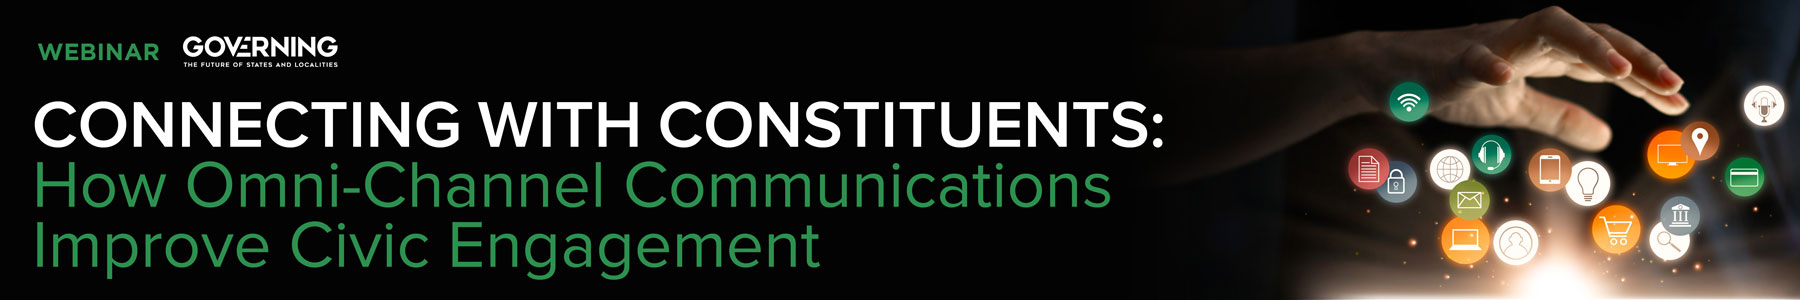 Connecting with Constituents: How Omni-Channel Communications Improve Civic Engagement